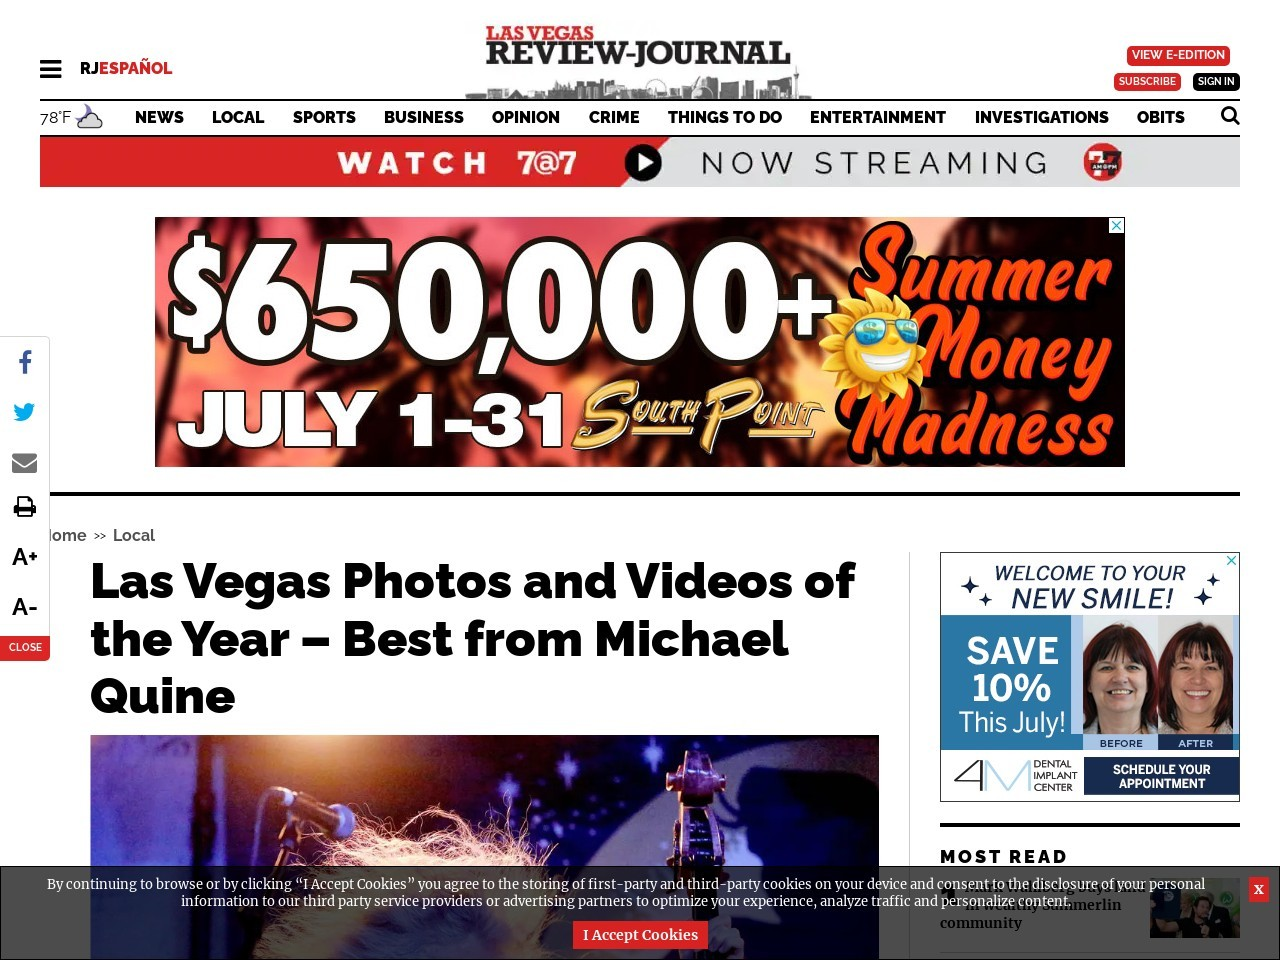 Las Vegas Photos and Videos of the Year – Best from Michael Quine